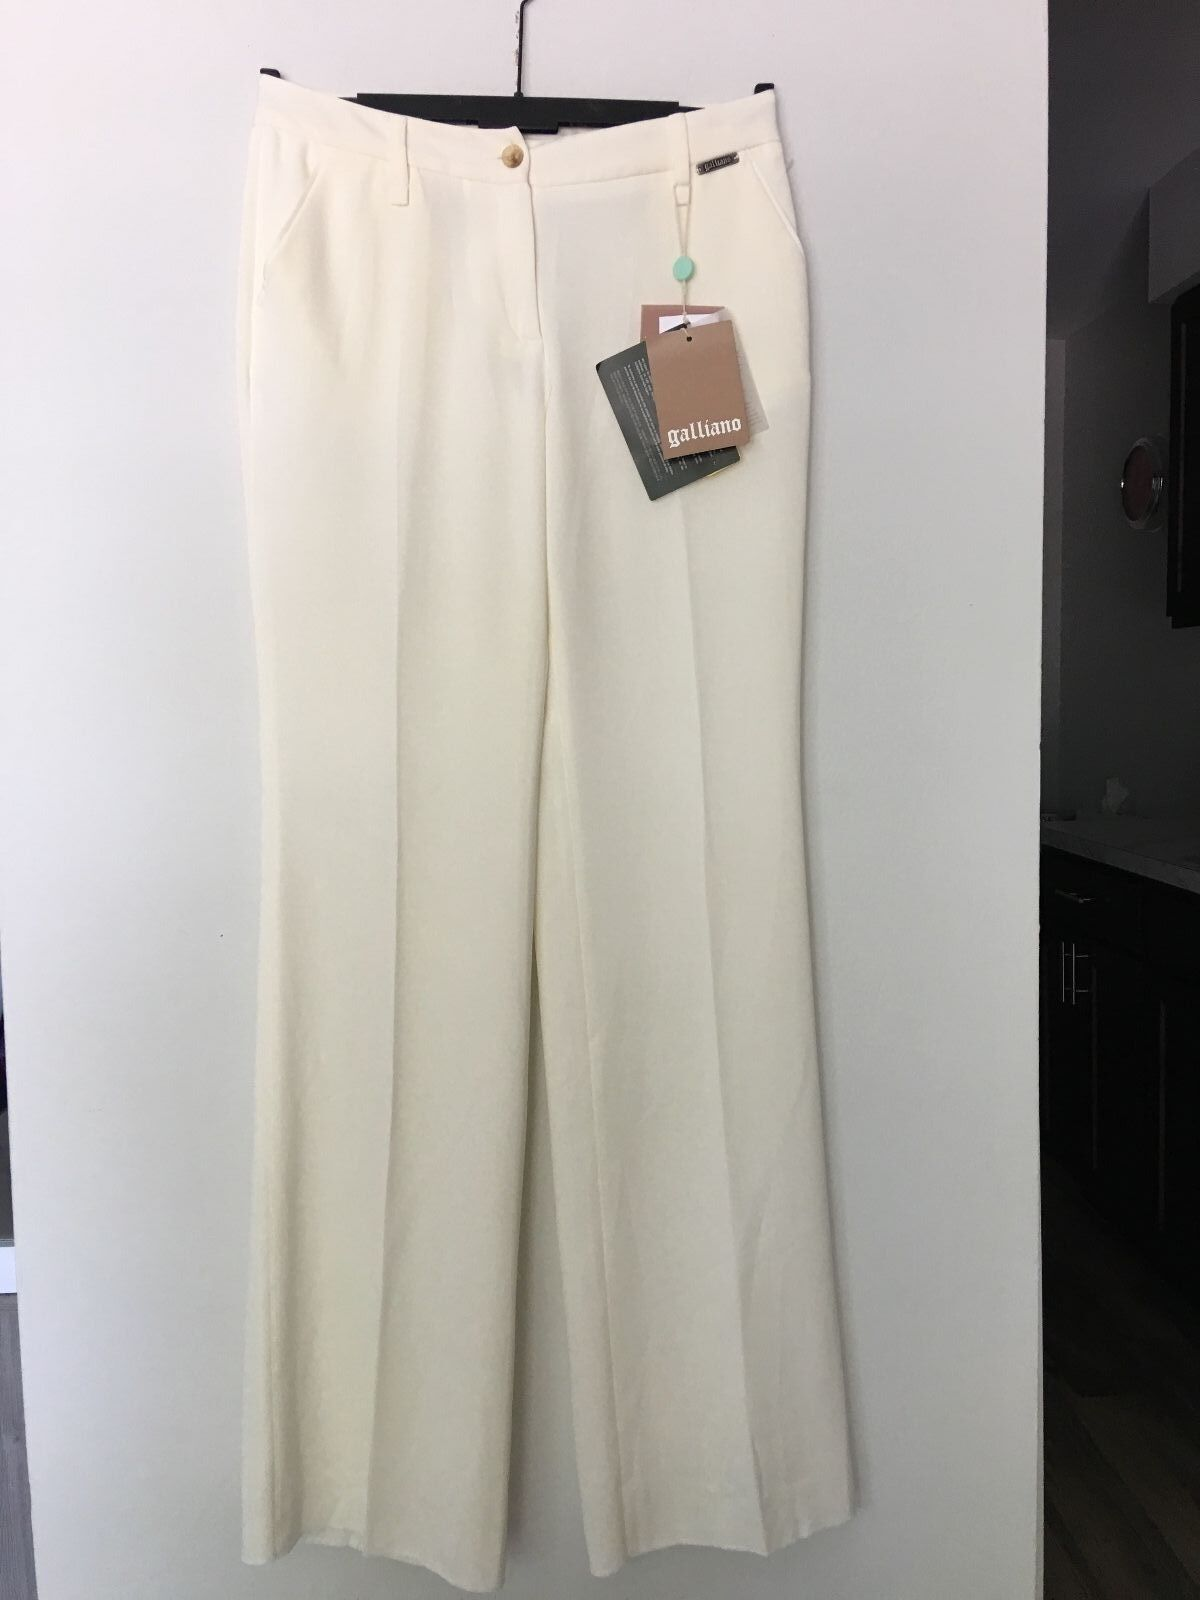 NWT GALLIANO OFF WHITE IVORY DRESS PANTS SIZE 30 44 US 8 MADE IN ITALY